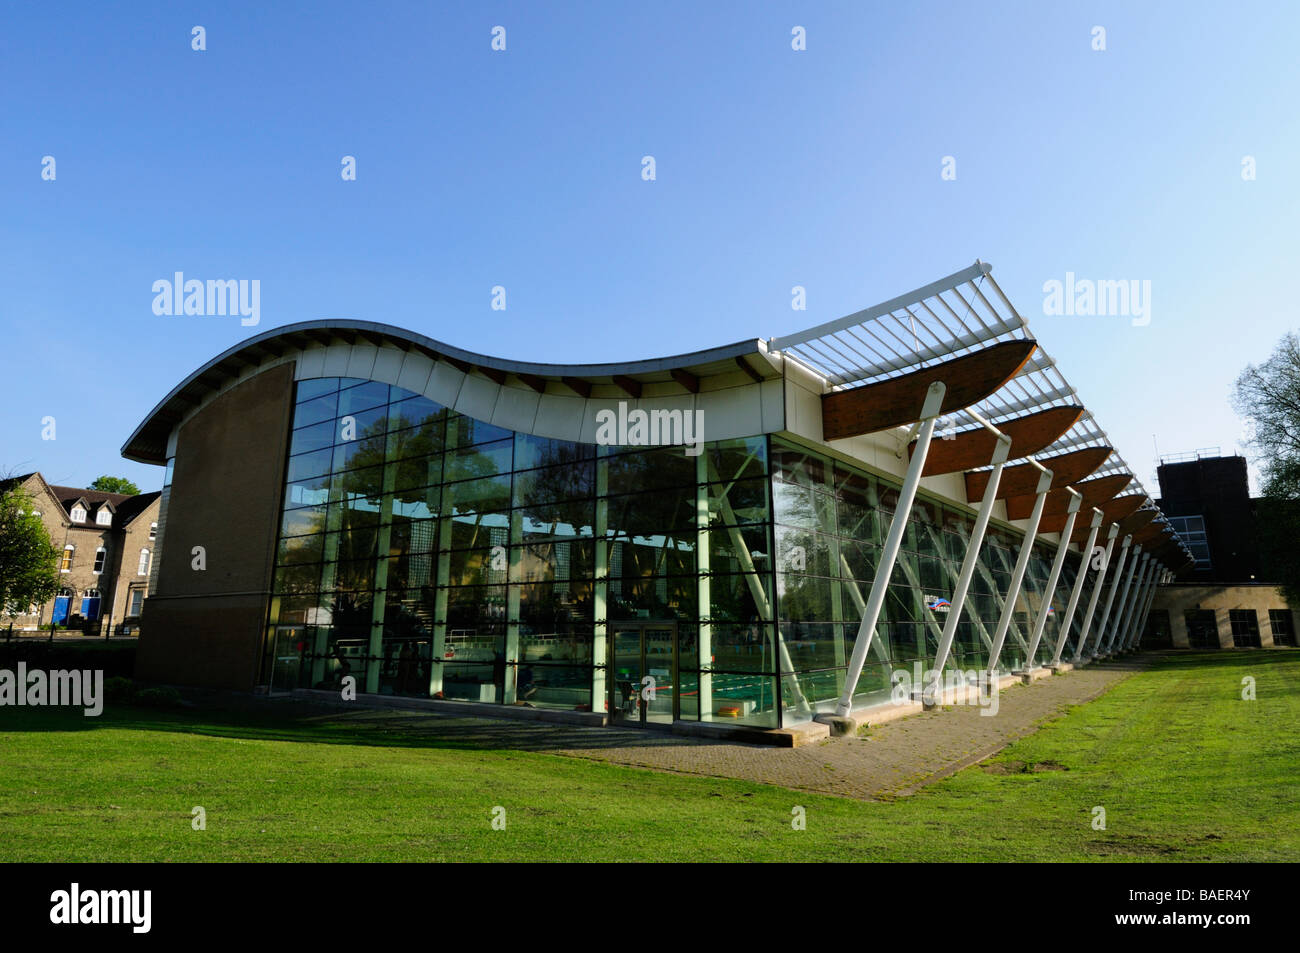 Parkside pools swimming pool cambridge england uk stock photo royalty free image 23682427 alamy Swimming pools in cambridge uk